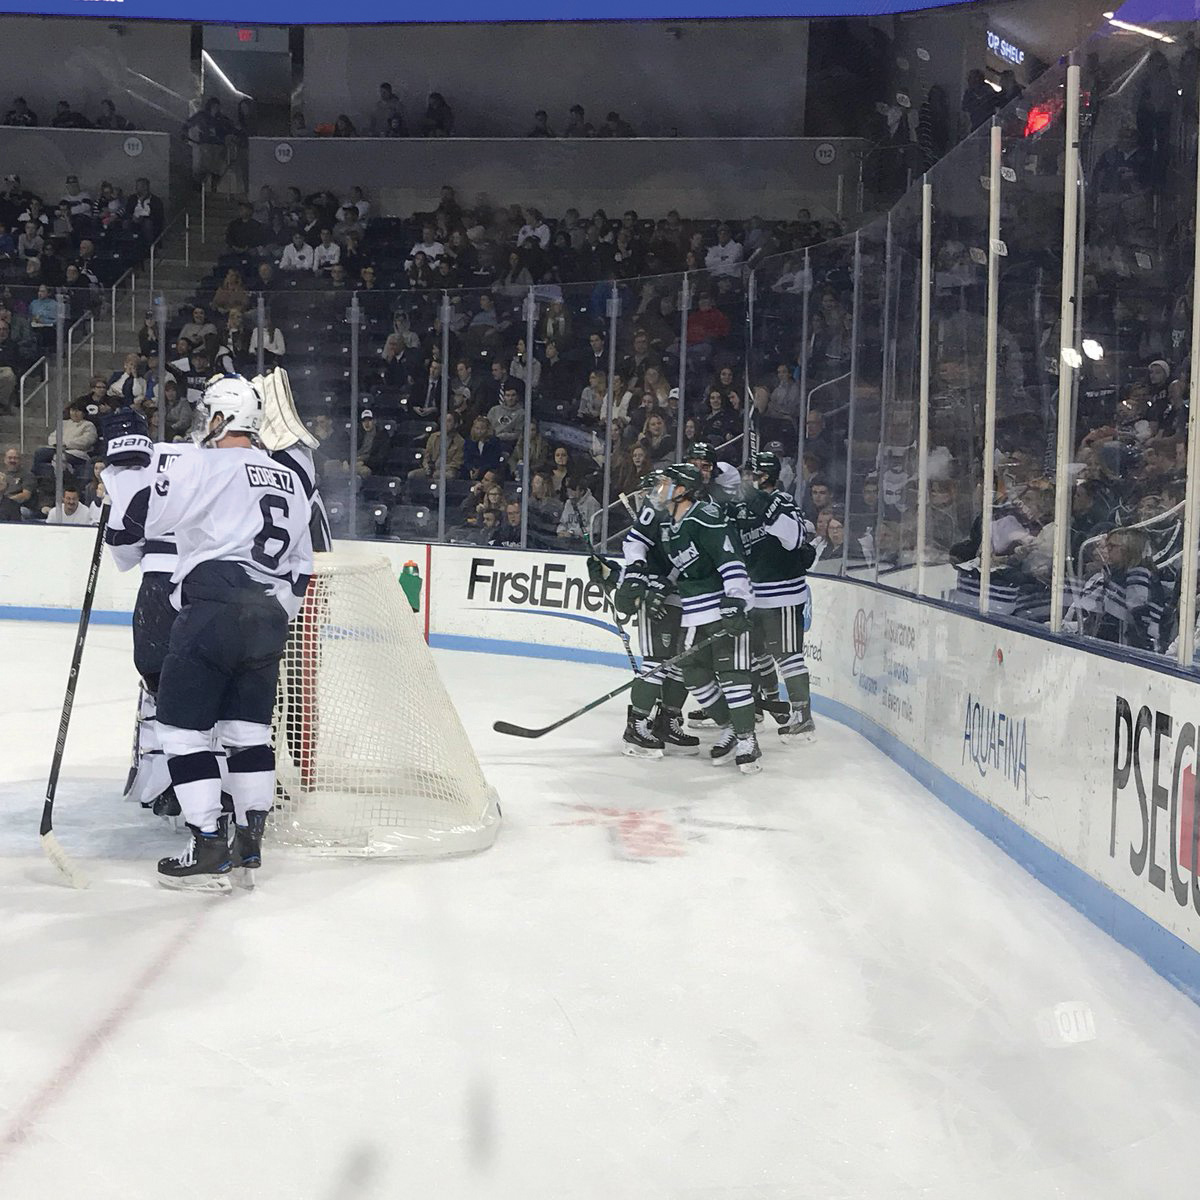 Lakers huddle behind the Penn State net.  The Lakers won 7-4 against Penn State on Nov. 3